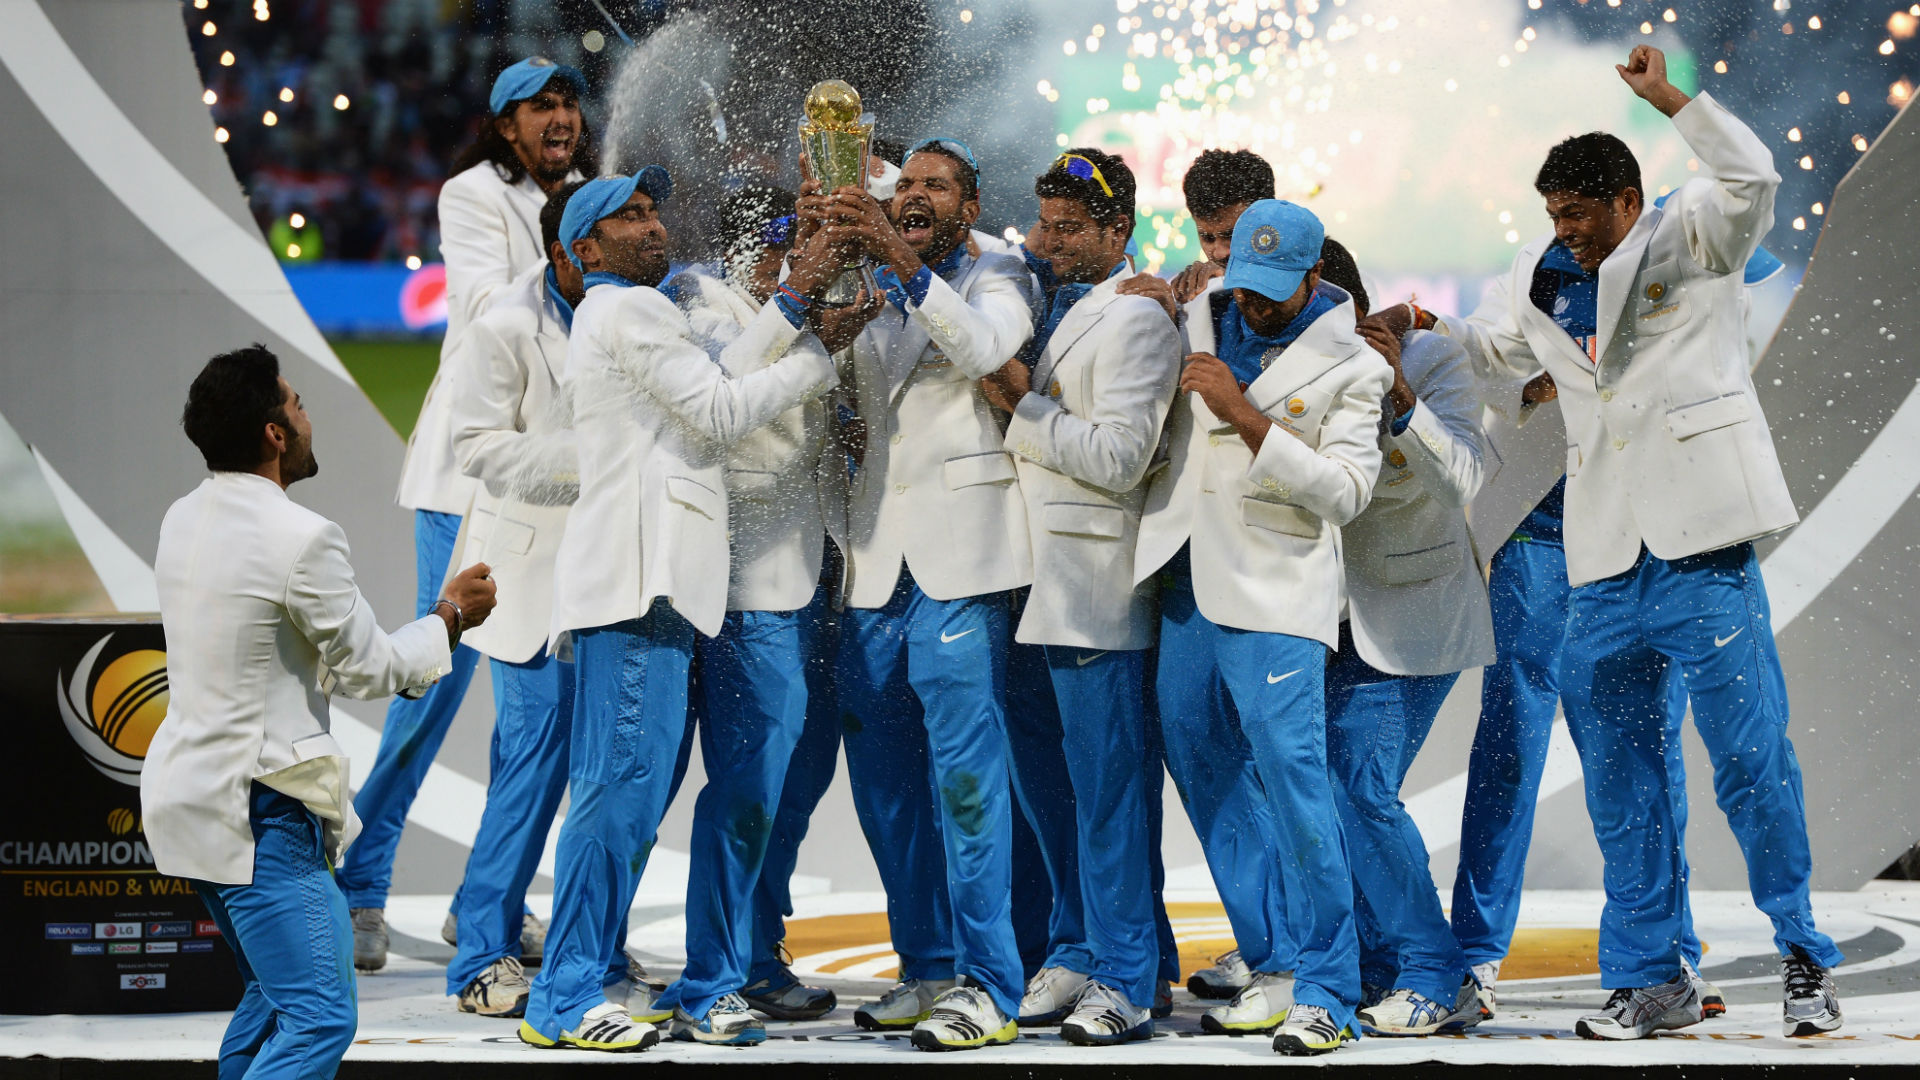 Select Champions Trophy Squad Immediately Coa To Bcci: BCCI Urged To Select Champions Trophy Squad 'immediately